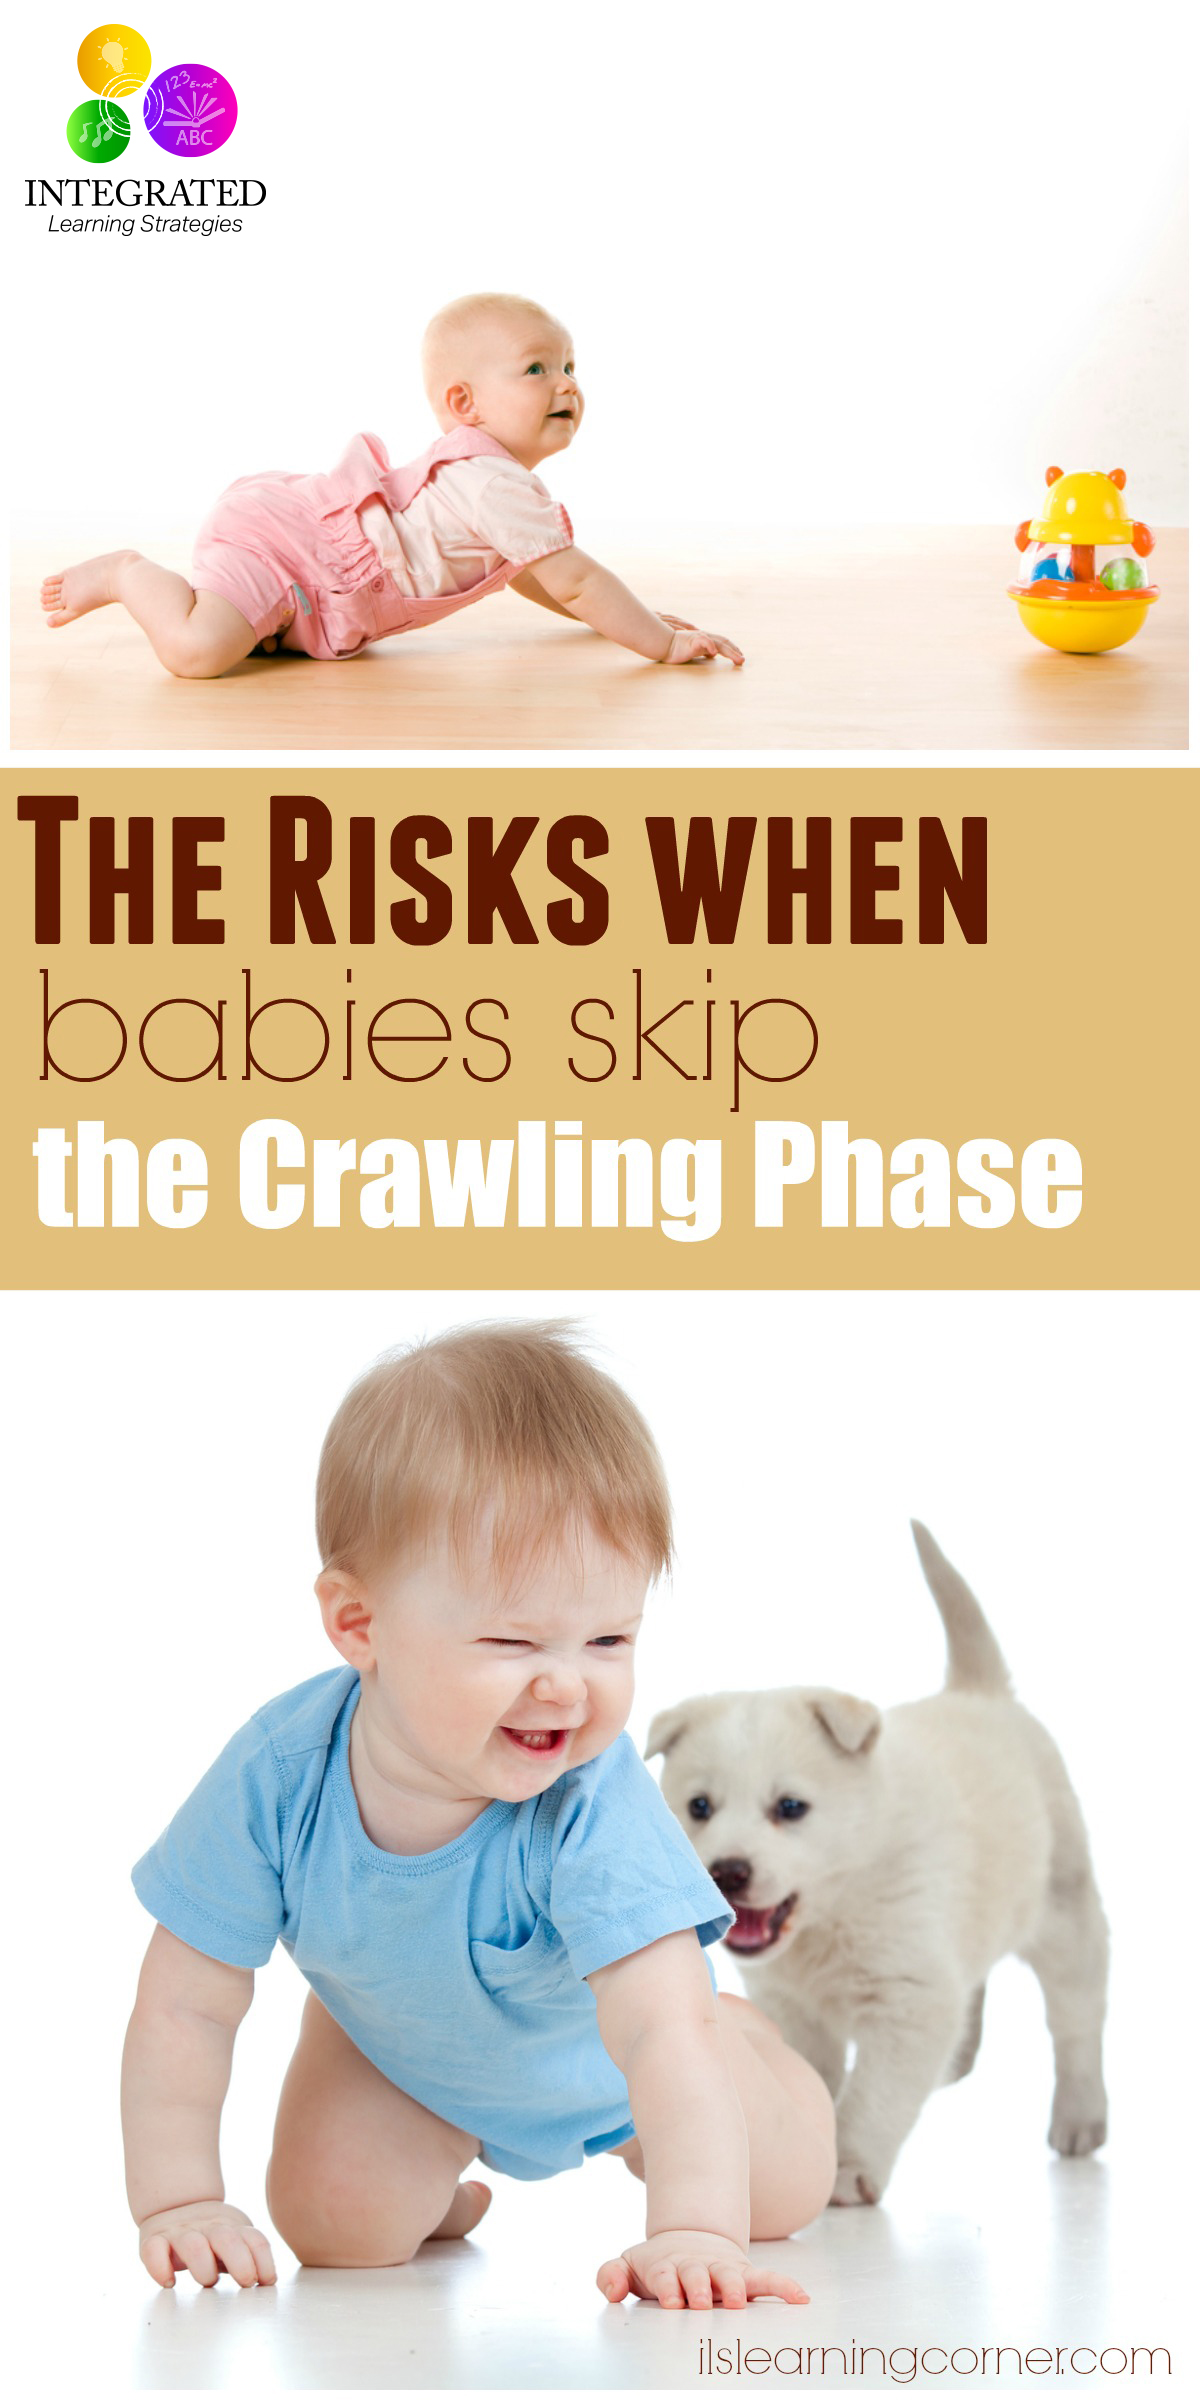 The Learning Risks when Babies Skip the Crawling Phase